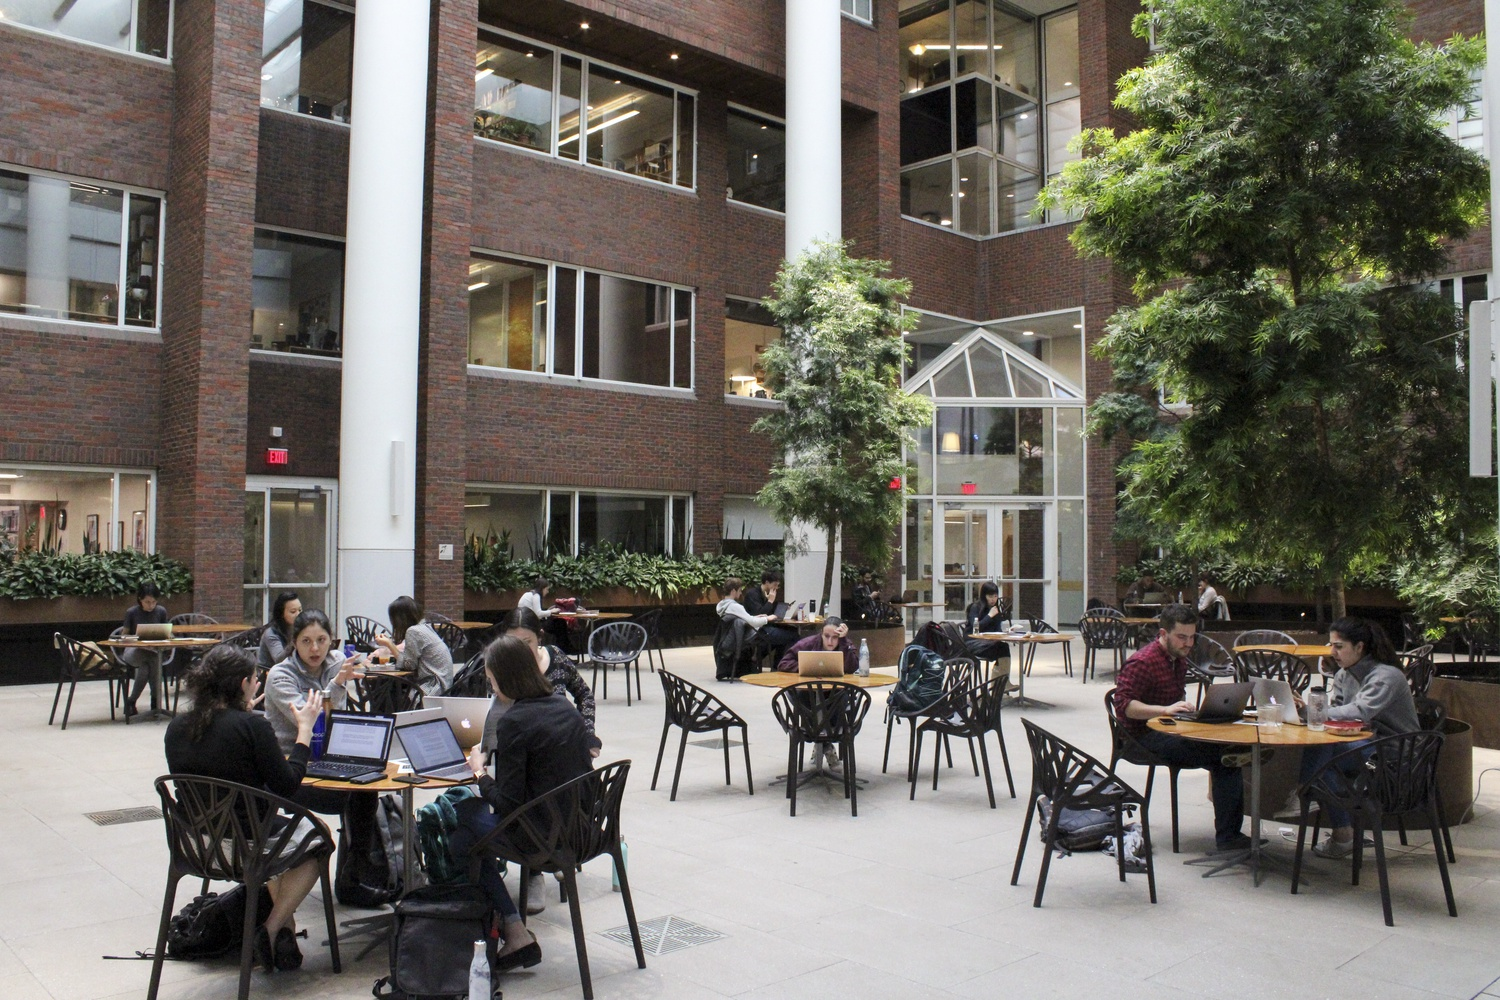 Students work inside the renovated Littauer Building of the Harvard Kennedy School.